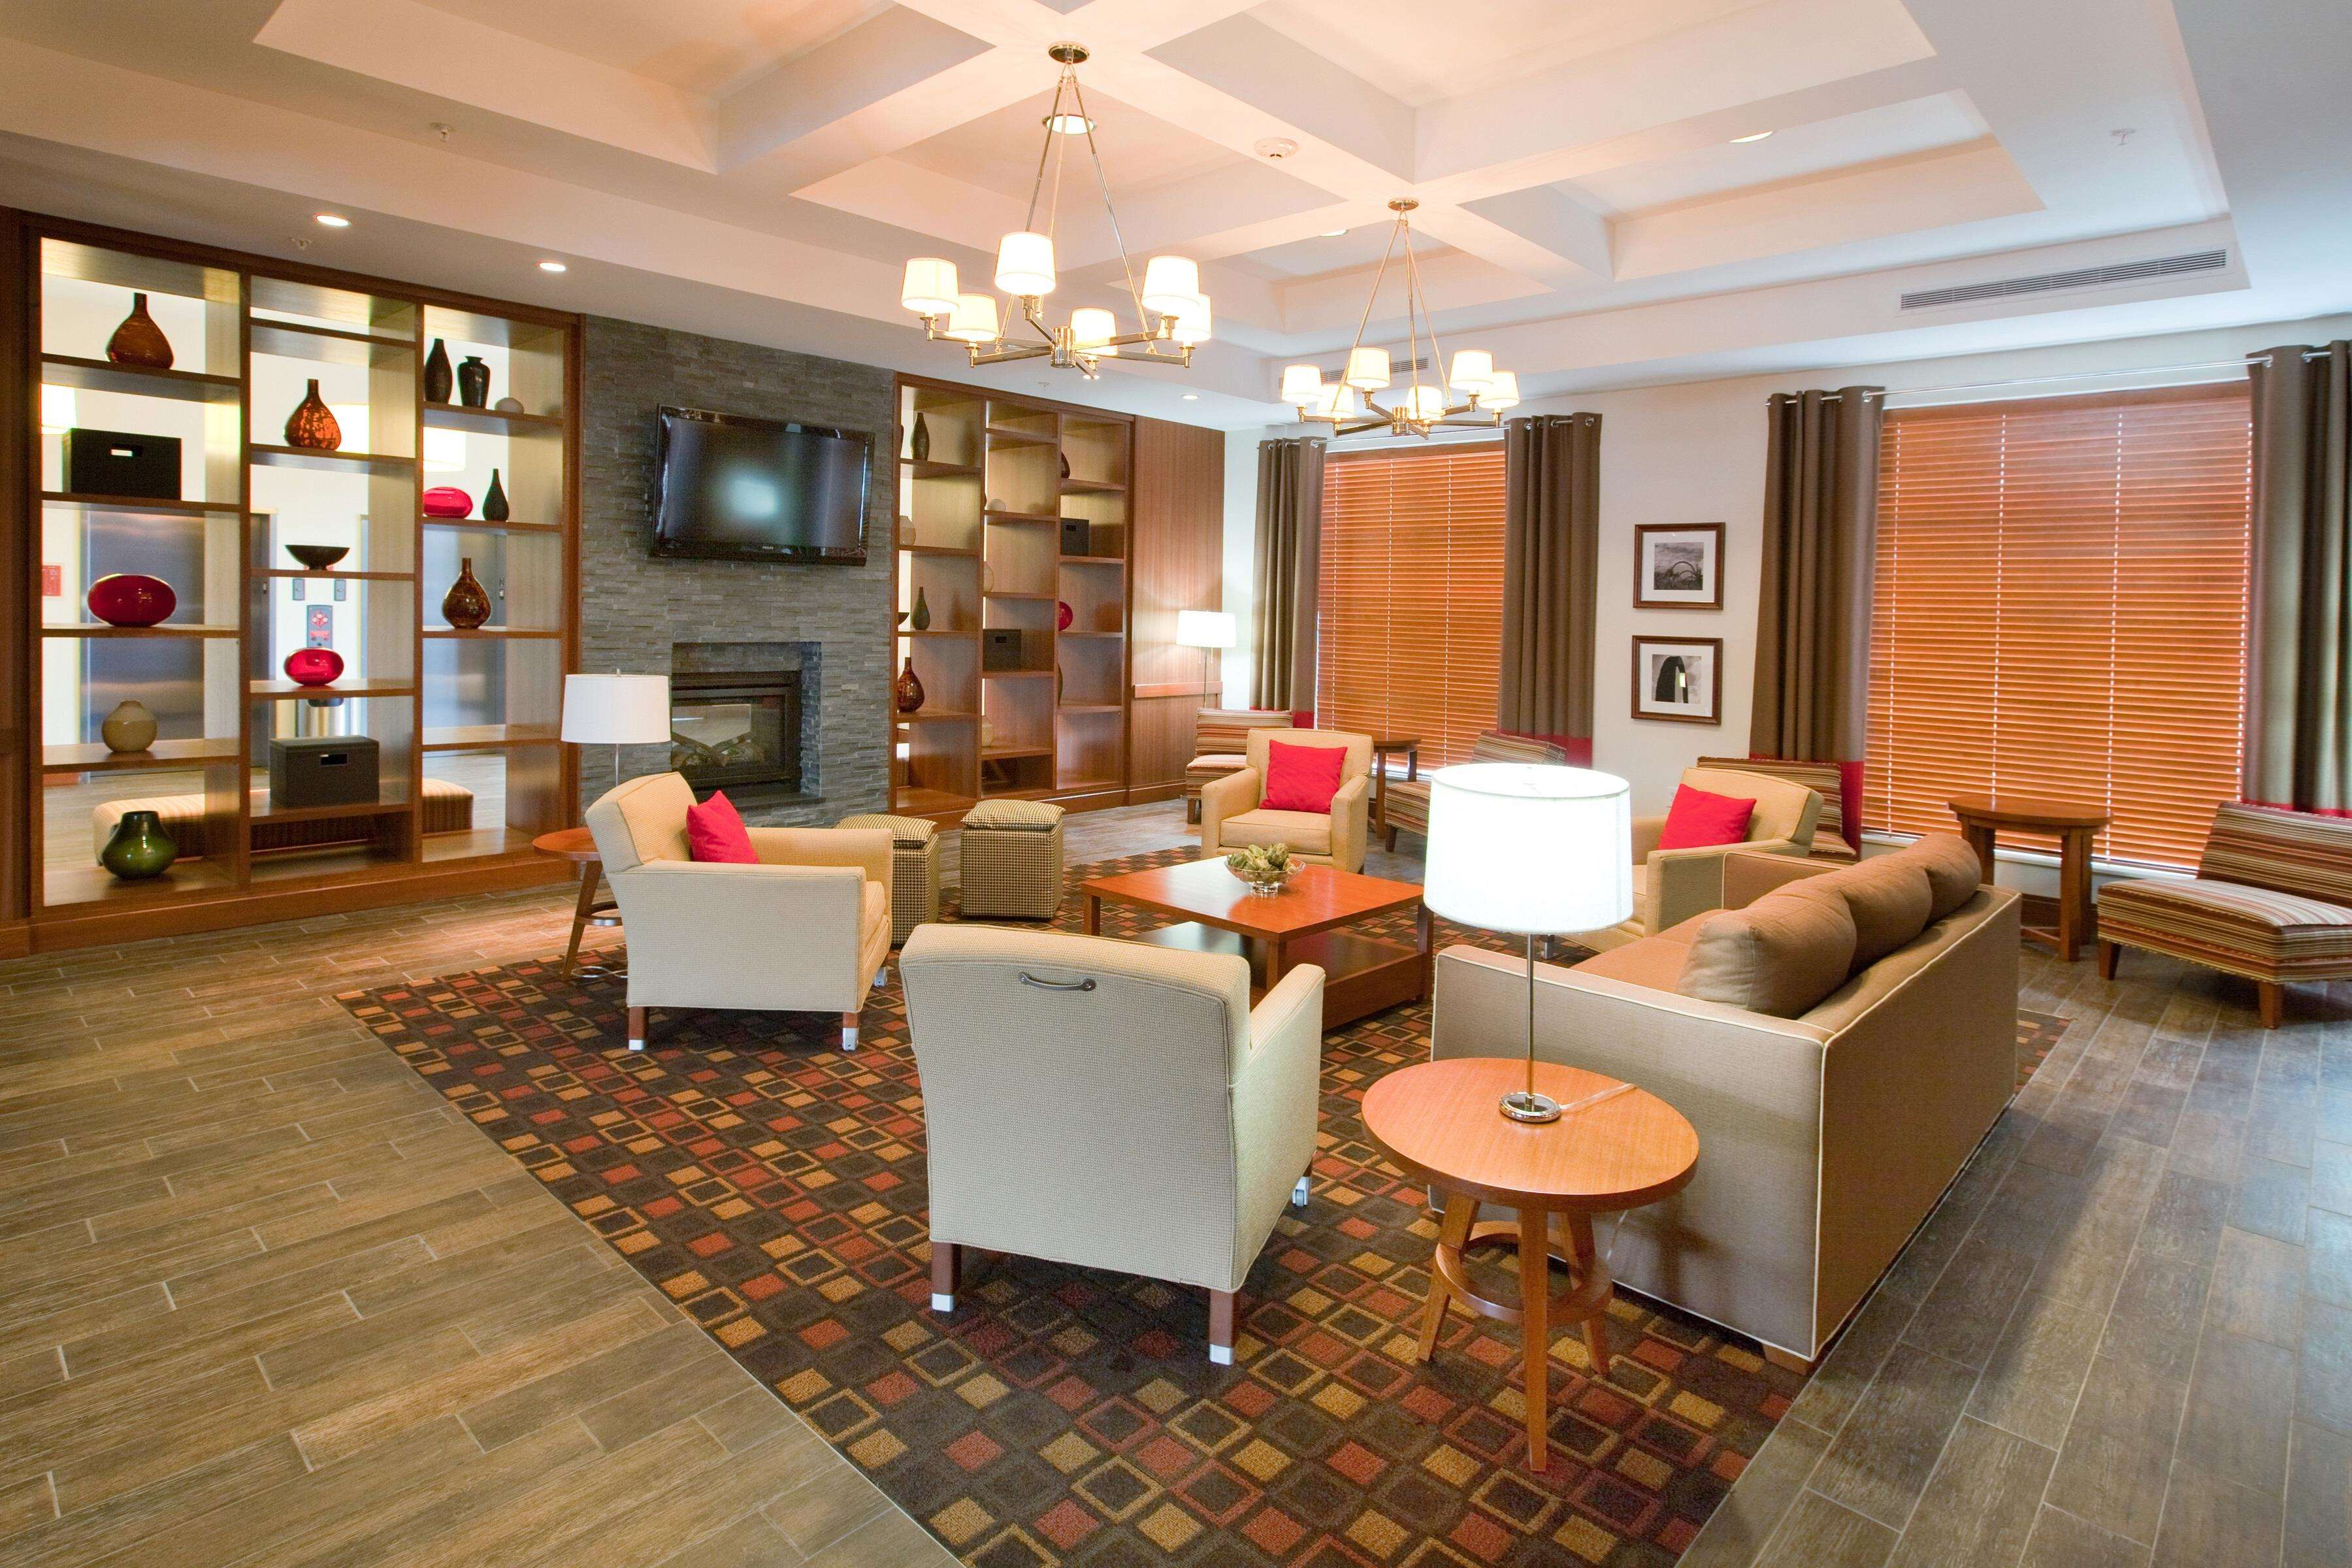 DoubleTree by Hilton Hotel Raleigh - Cary image 4